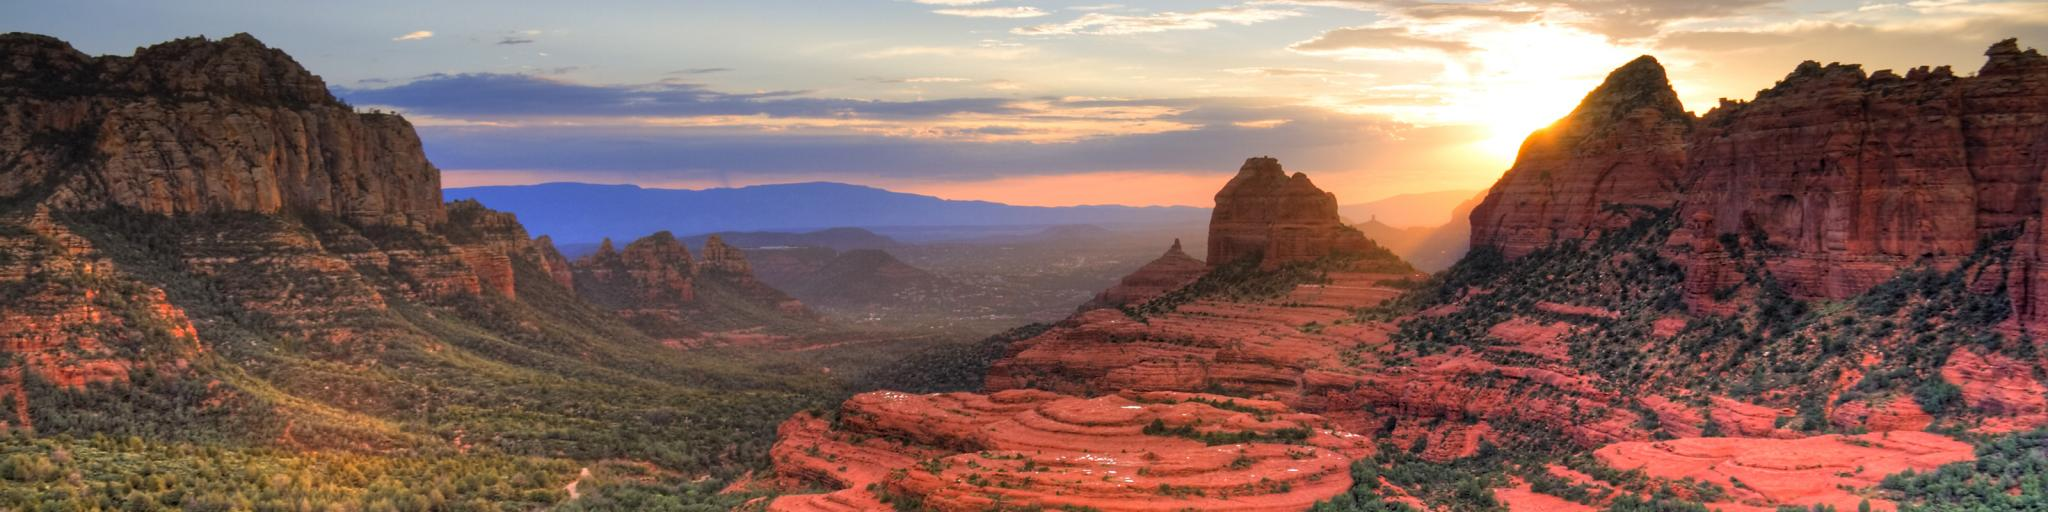 The scenic route through the Red Rocks of Sedona is best for a road trip from Phoenix to Las Vegas.